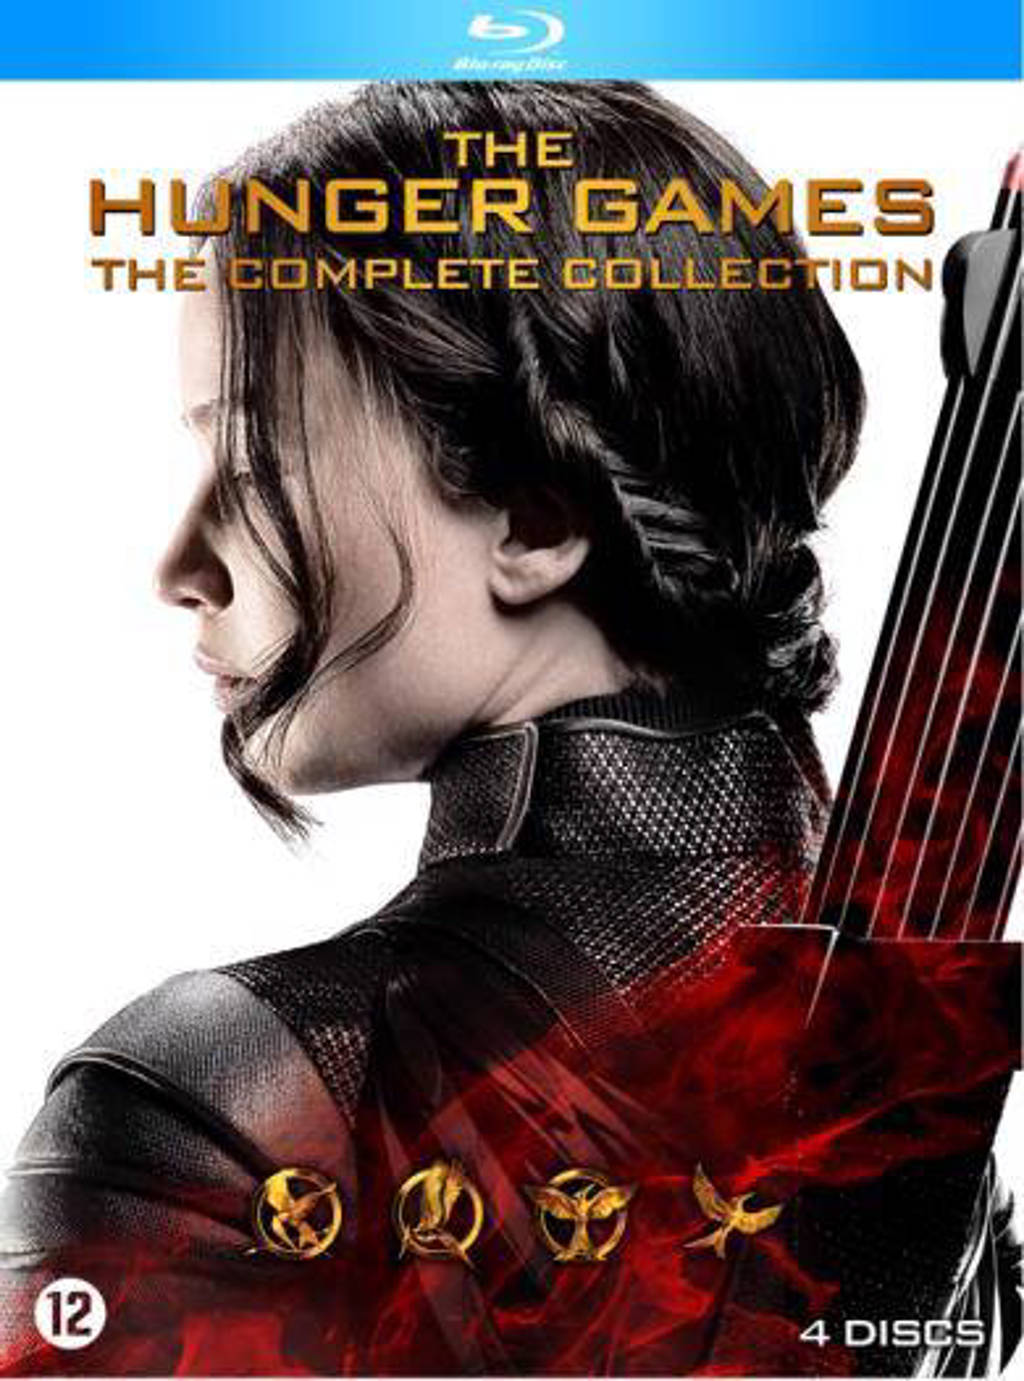 Hunger games - Complete collection (Blu-ray)